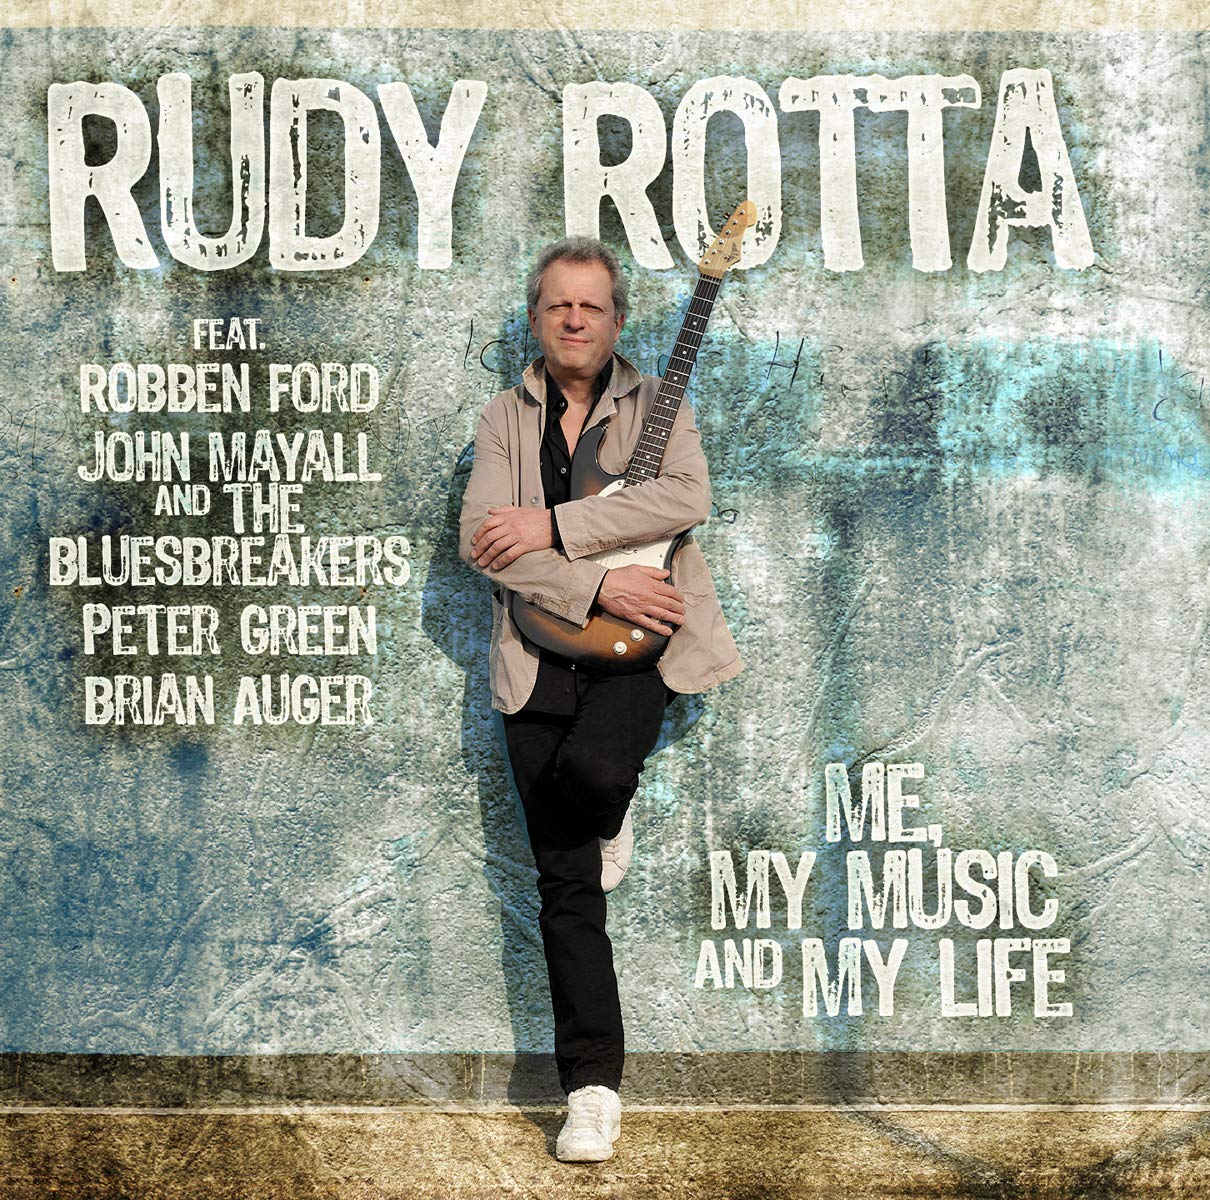 Руди Ротта,Джон Мэйолл Rudy Rotta Feat John Mayall. Me, My Music And My Life (2 CD) my kind of music cool yule 2 cd